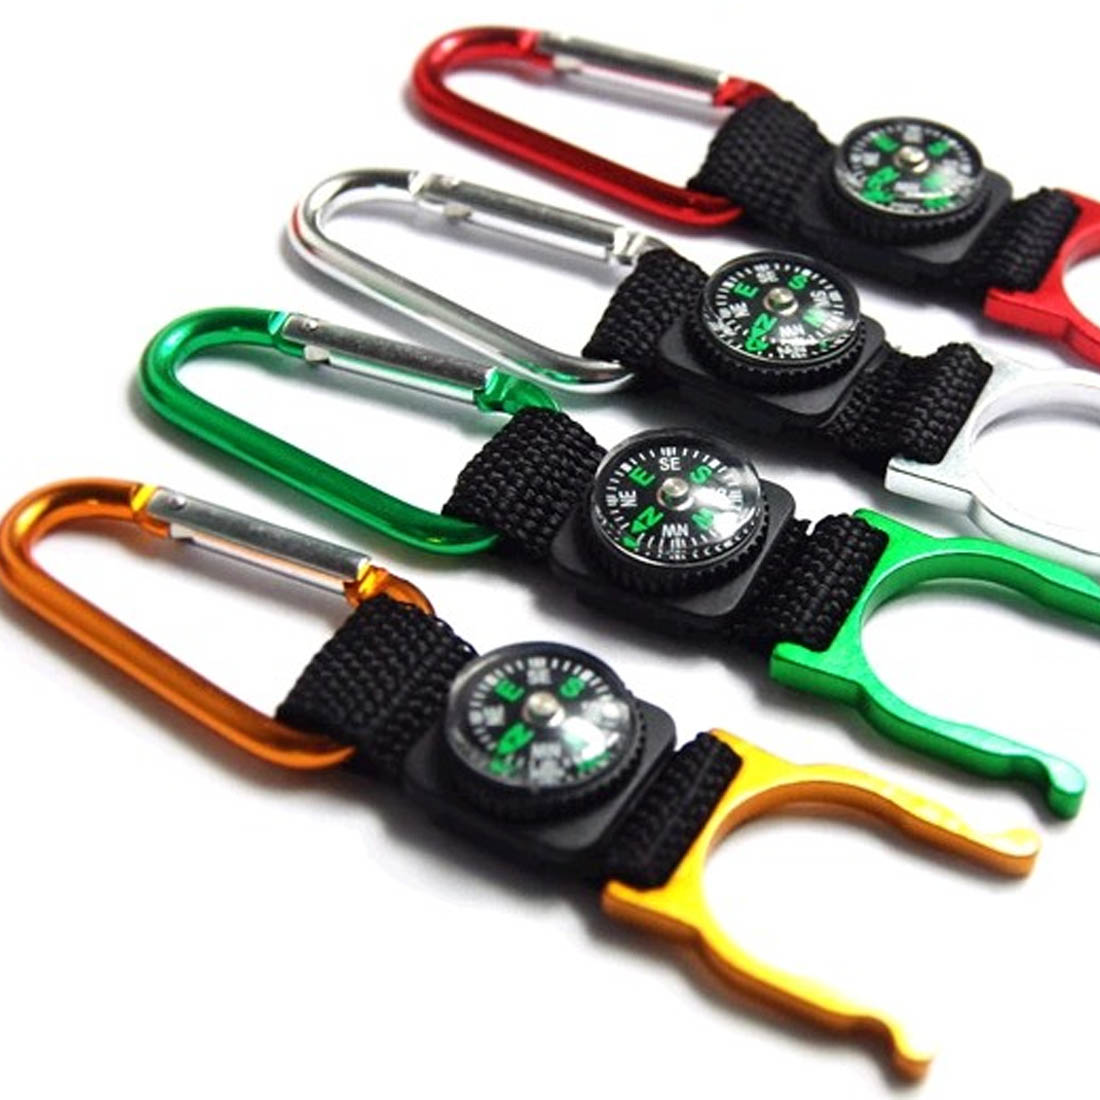 Hot Sell 1Pc Mini Buckle Compass With Carabiner Mini Compass Colors Random Camping Hiking Tools Hanging Ring Type